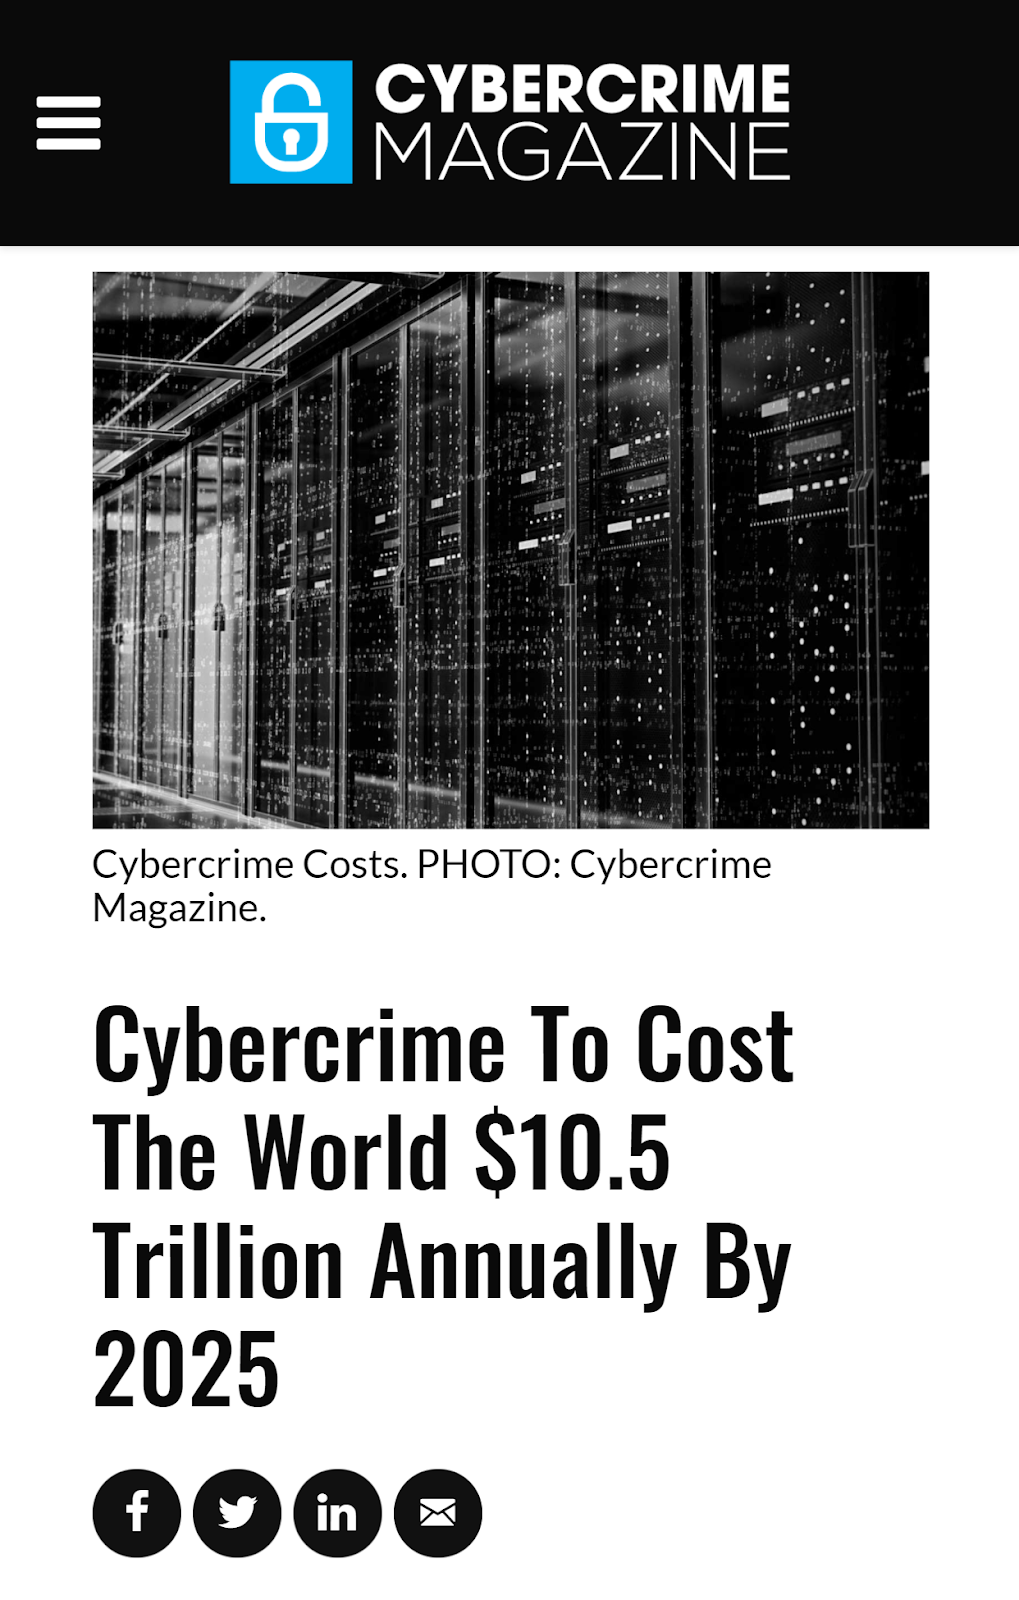 Cybersecurityventures.com Cybercrime Damages 6 Trillion By 2021 IPhone 6 7 8 Plus